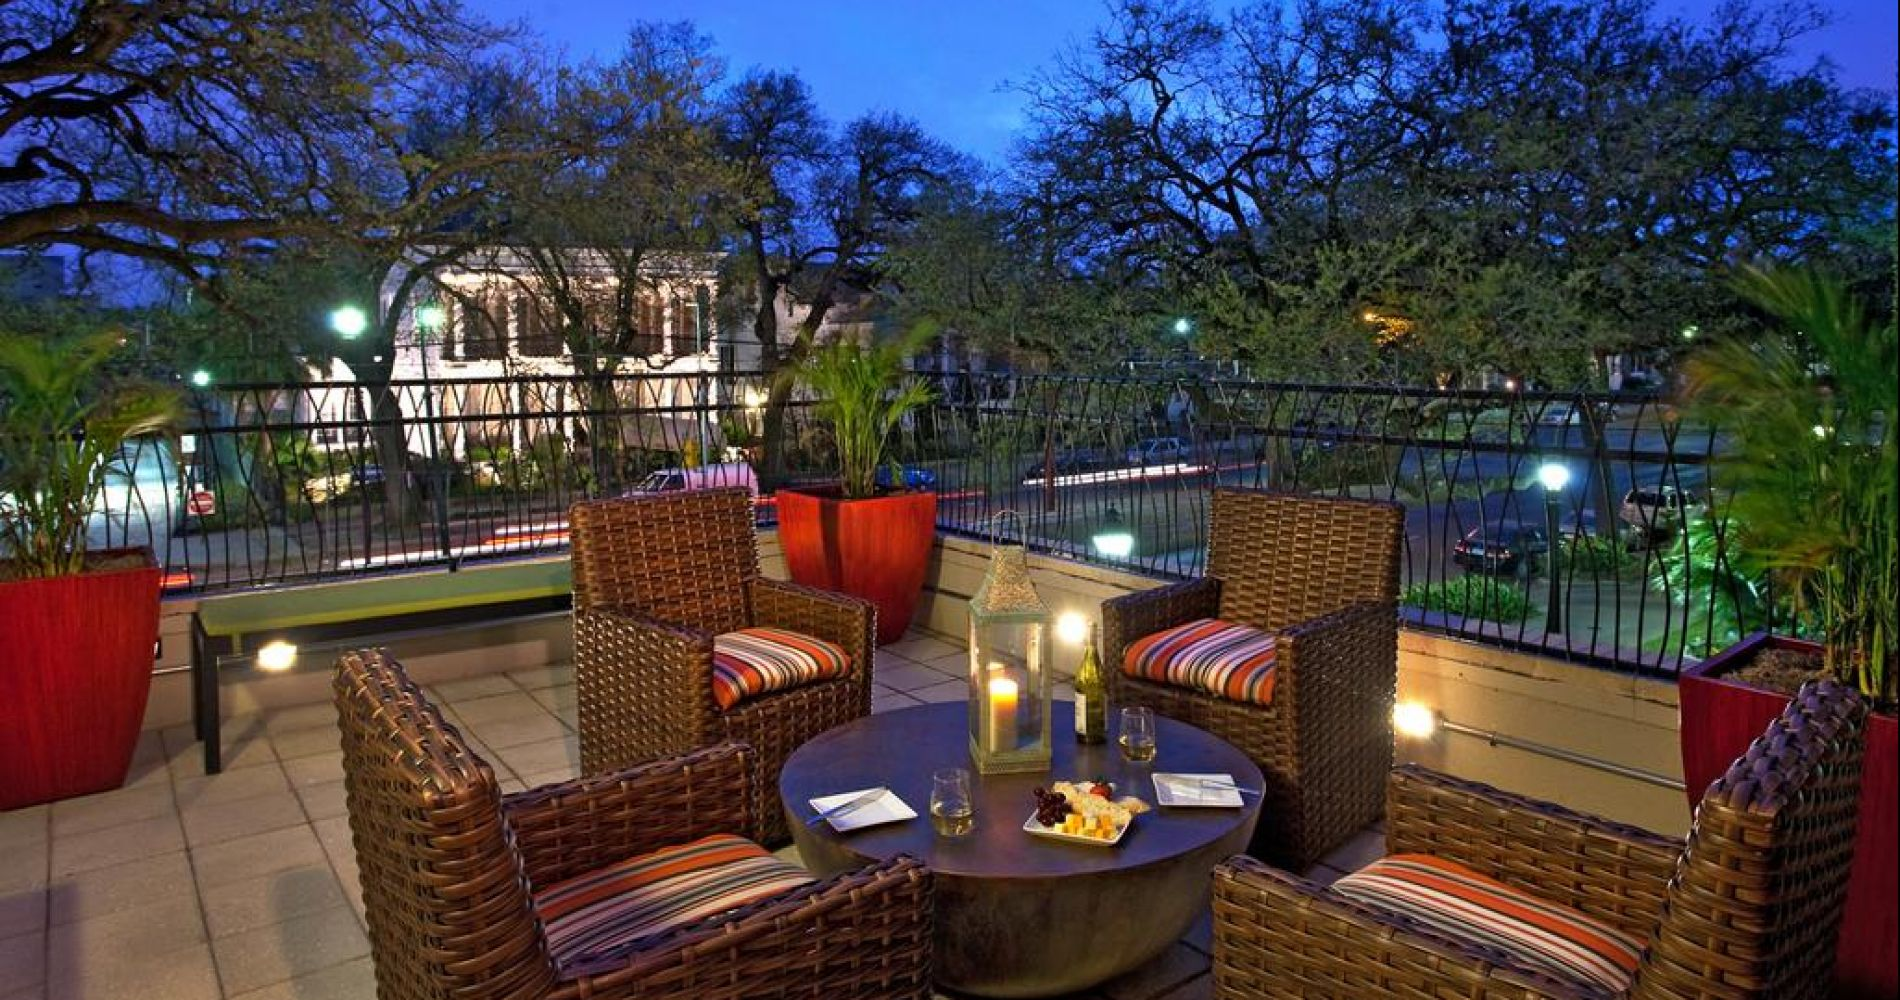 Hotel Indigo New Orleans Garden District Best Hotels And Overnight Stays By Tinggly